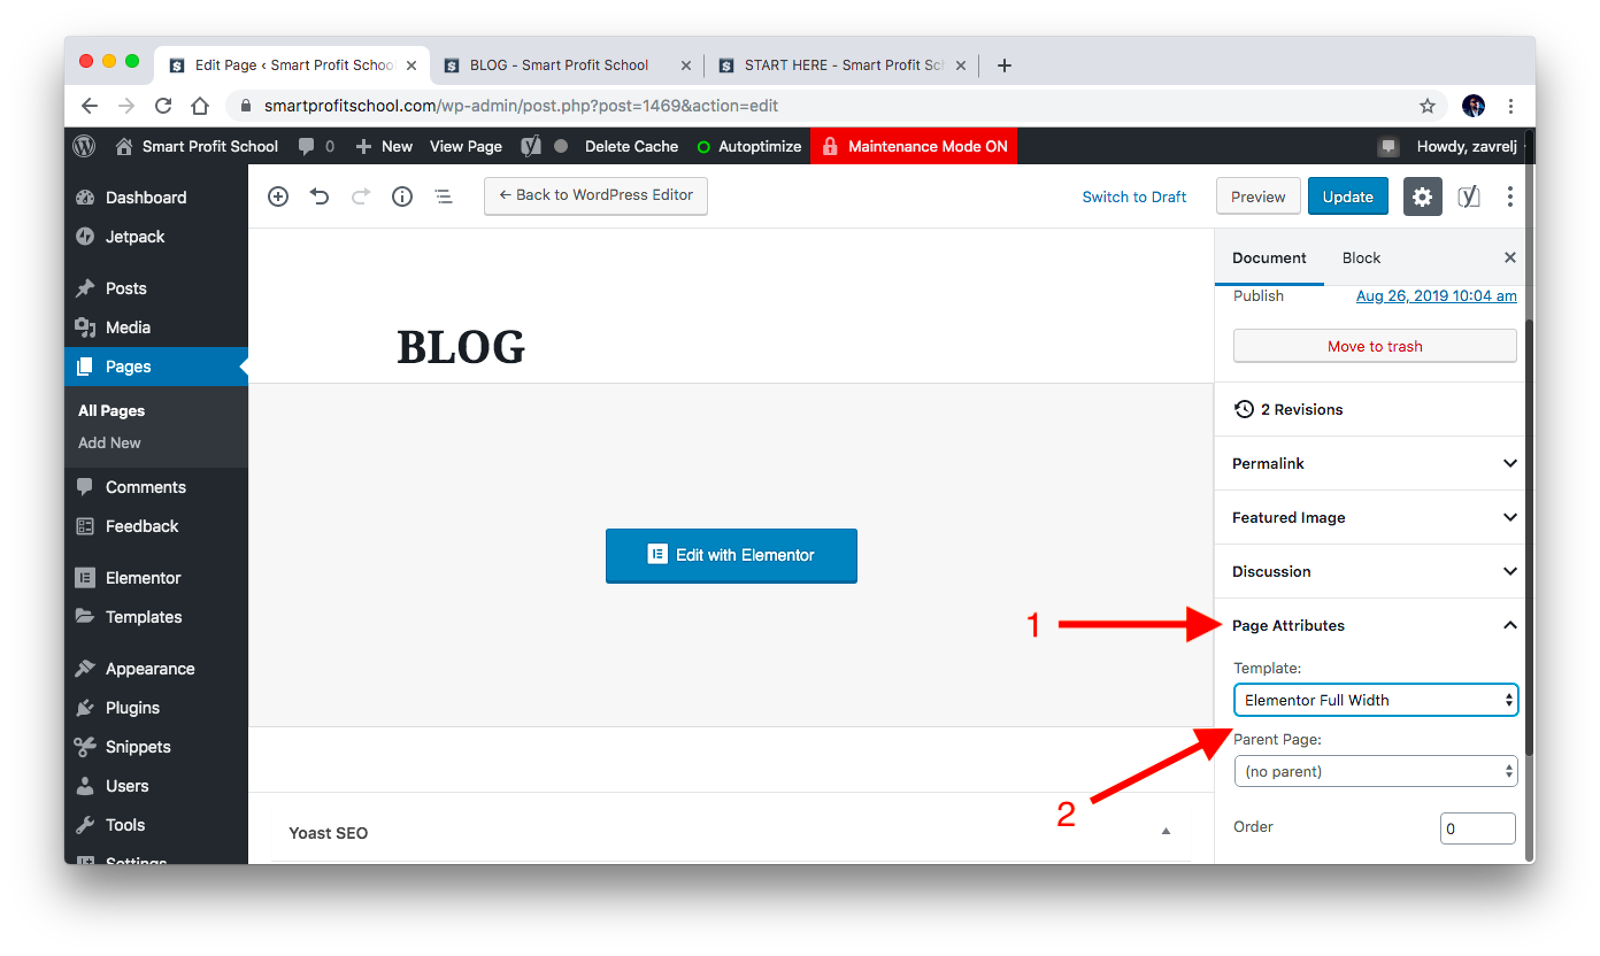 Blog page attributes